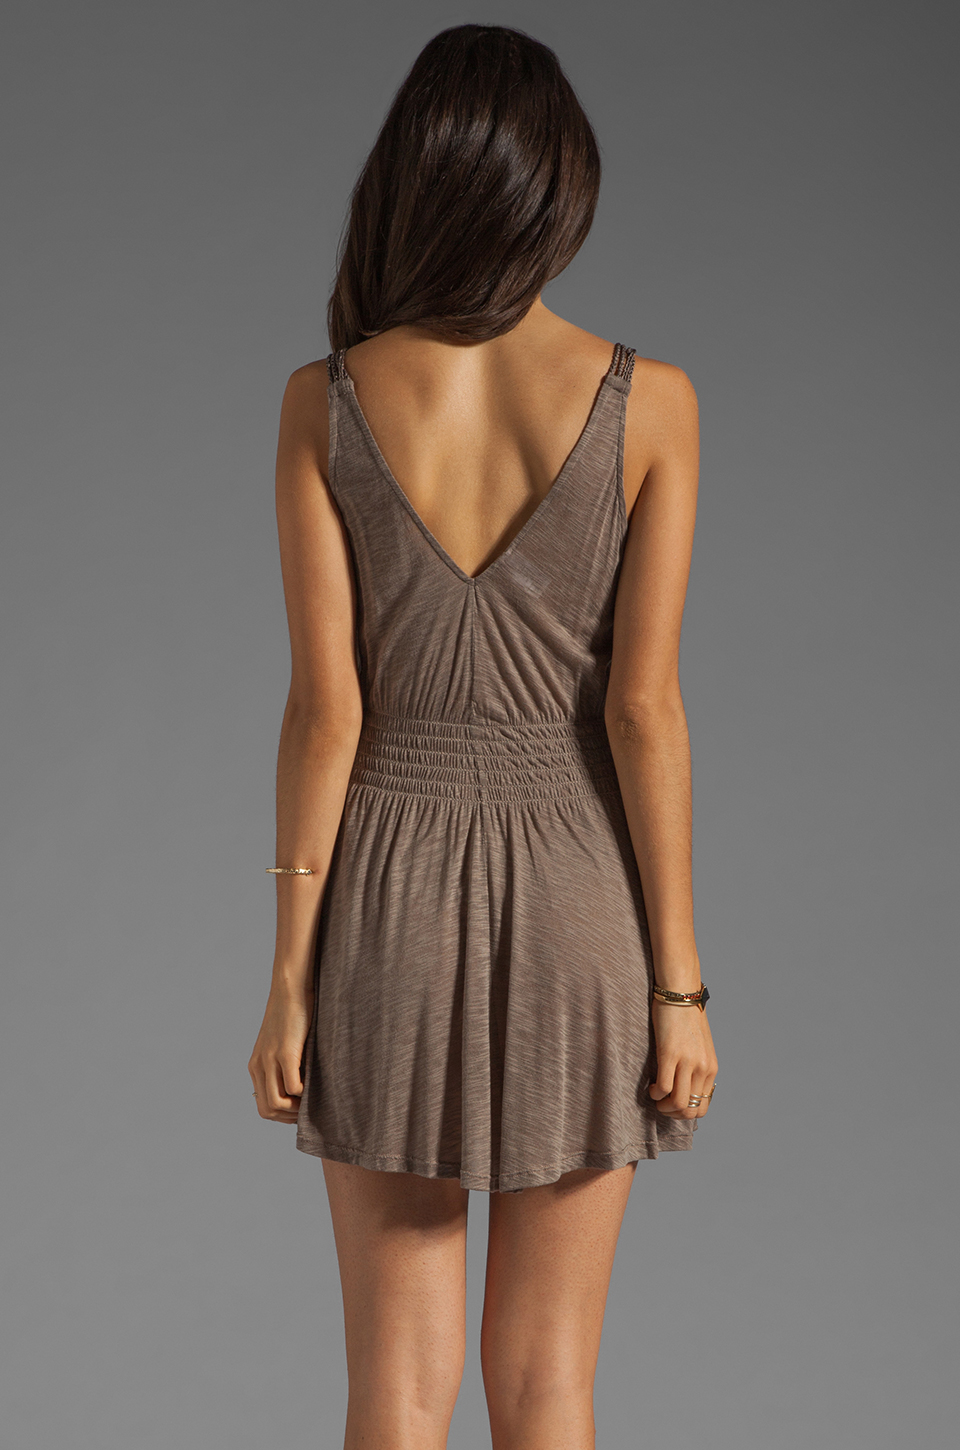 L*SPACE Spirit Mini Dress in Taupe